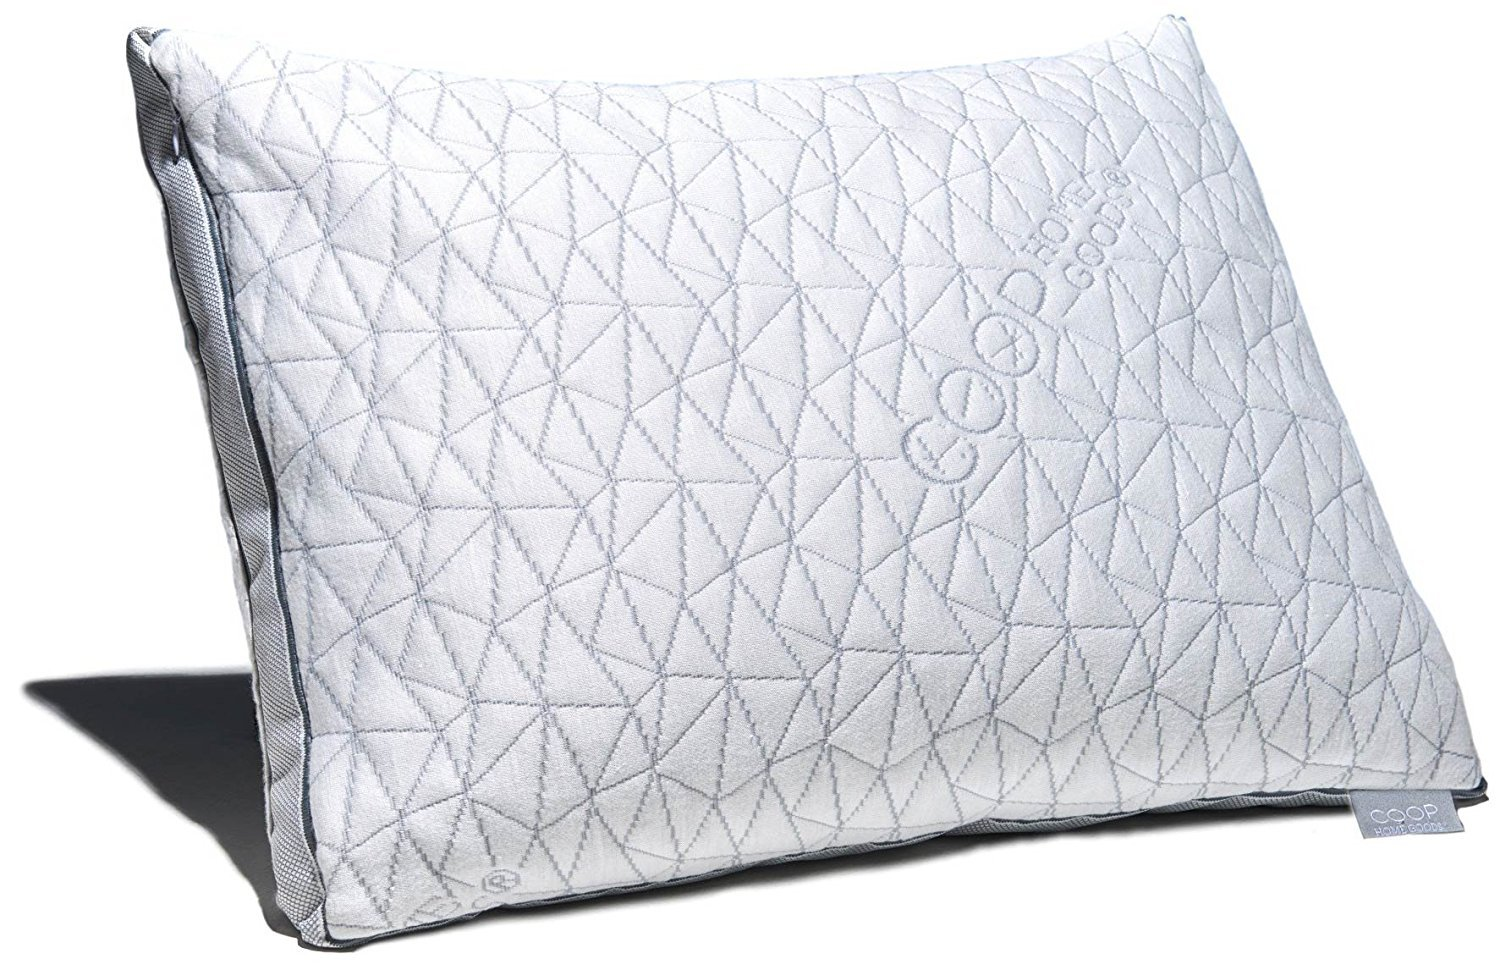 Coop Home Goods Eden Shredded Memory Foam Pillow with Cooling Zippered Cover and Adjustable Hypoallergenic Gel Infused Memory Foam Fill - Queen